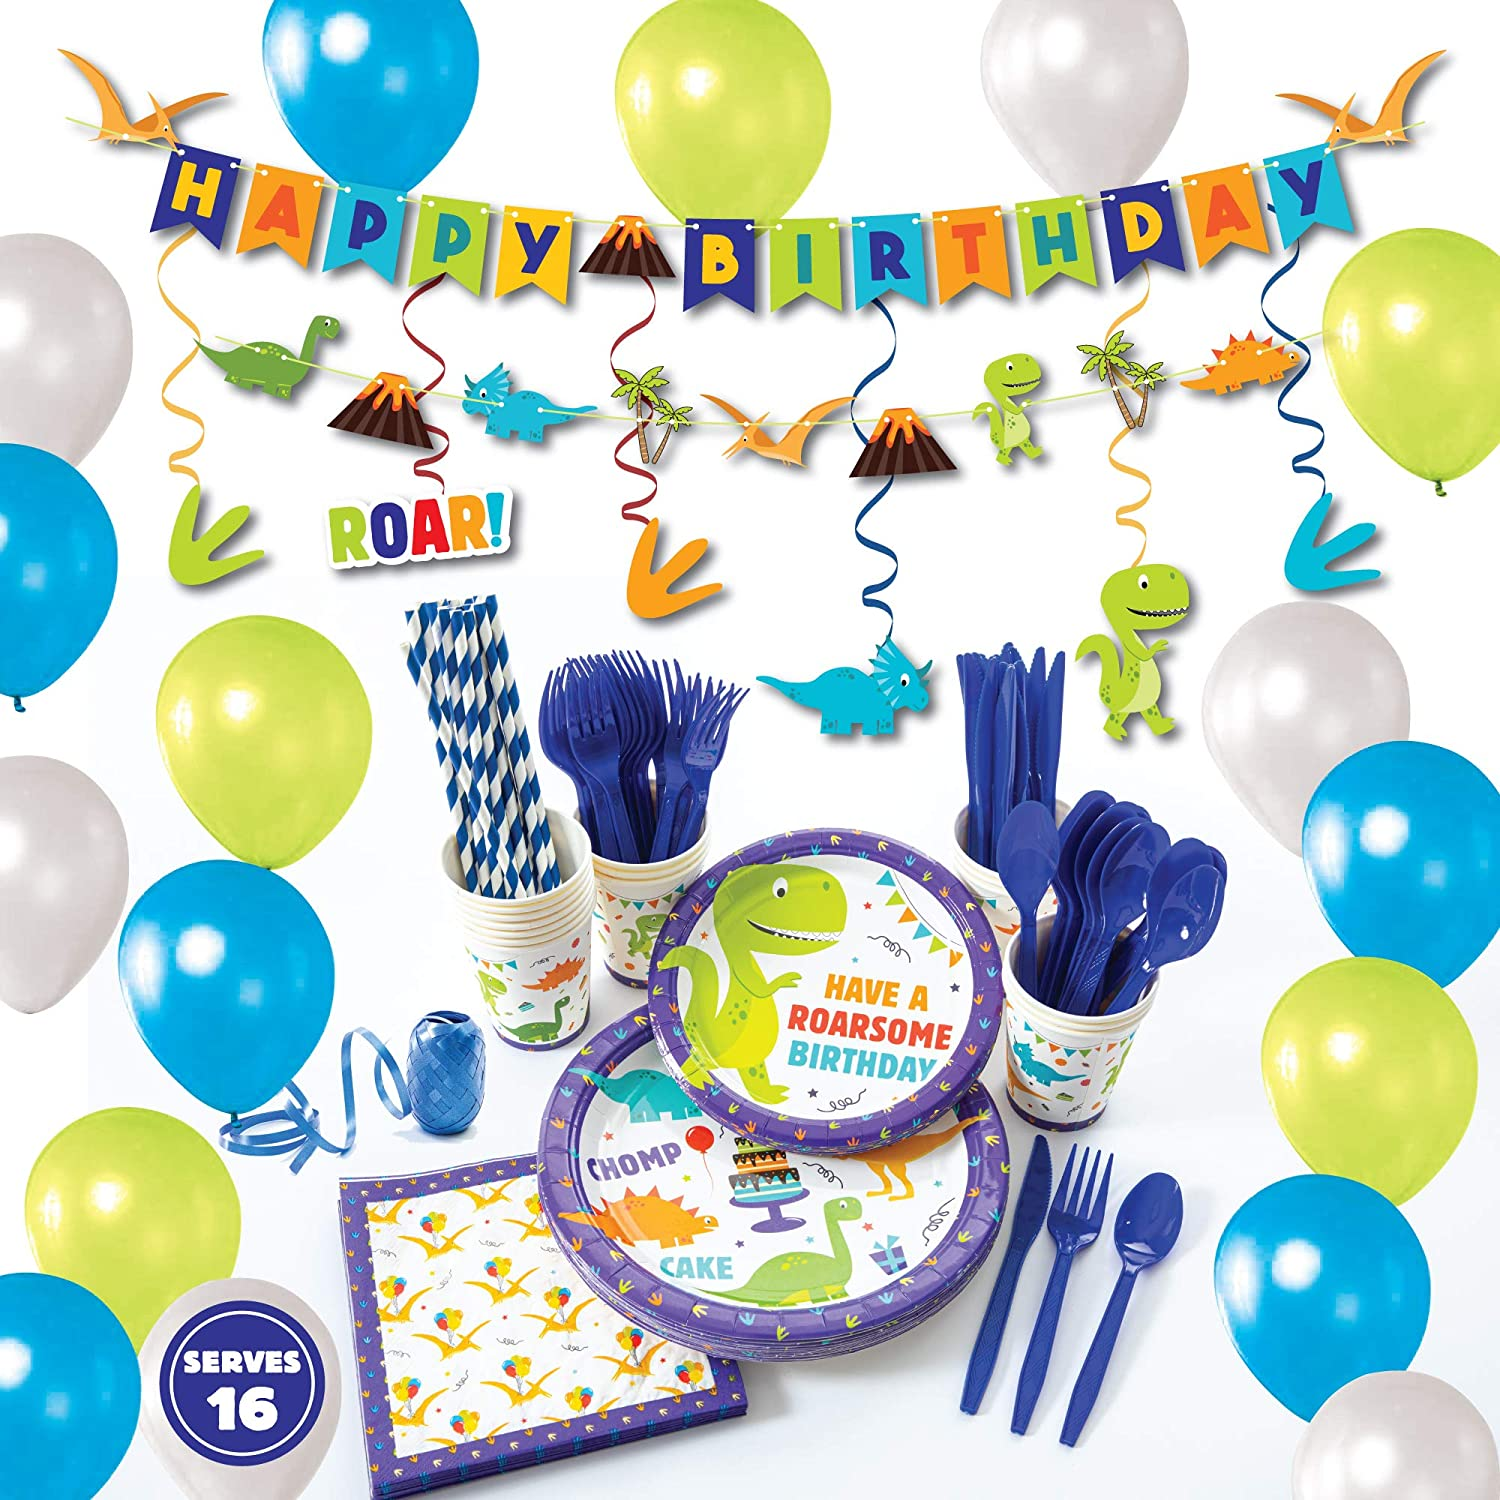 Whoobli Dinosaur Party Supplies (Serves 16), All-in-One Complete Dinosaur Birthday Party Supplies with with Birthday Plates, Utensils, Cups, Napkins and Dinosaur Party Decorations for Boys